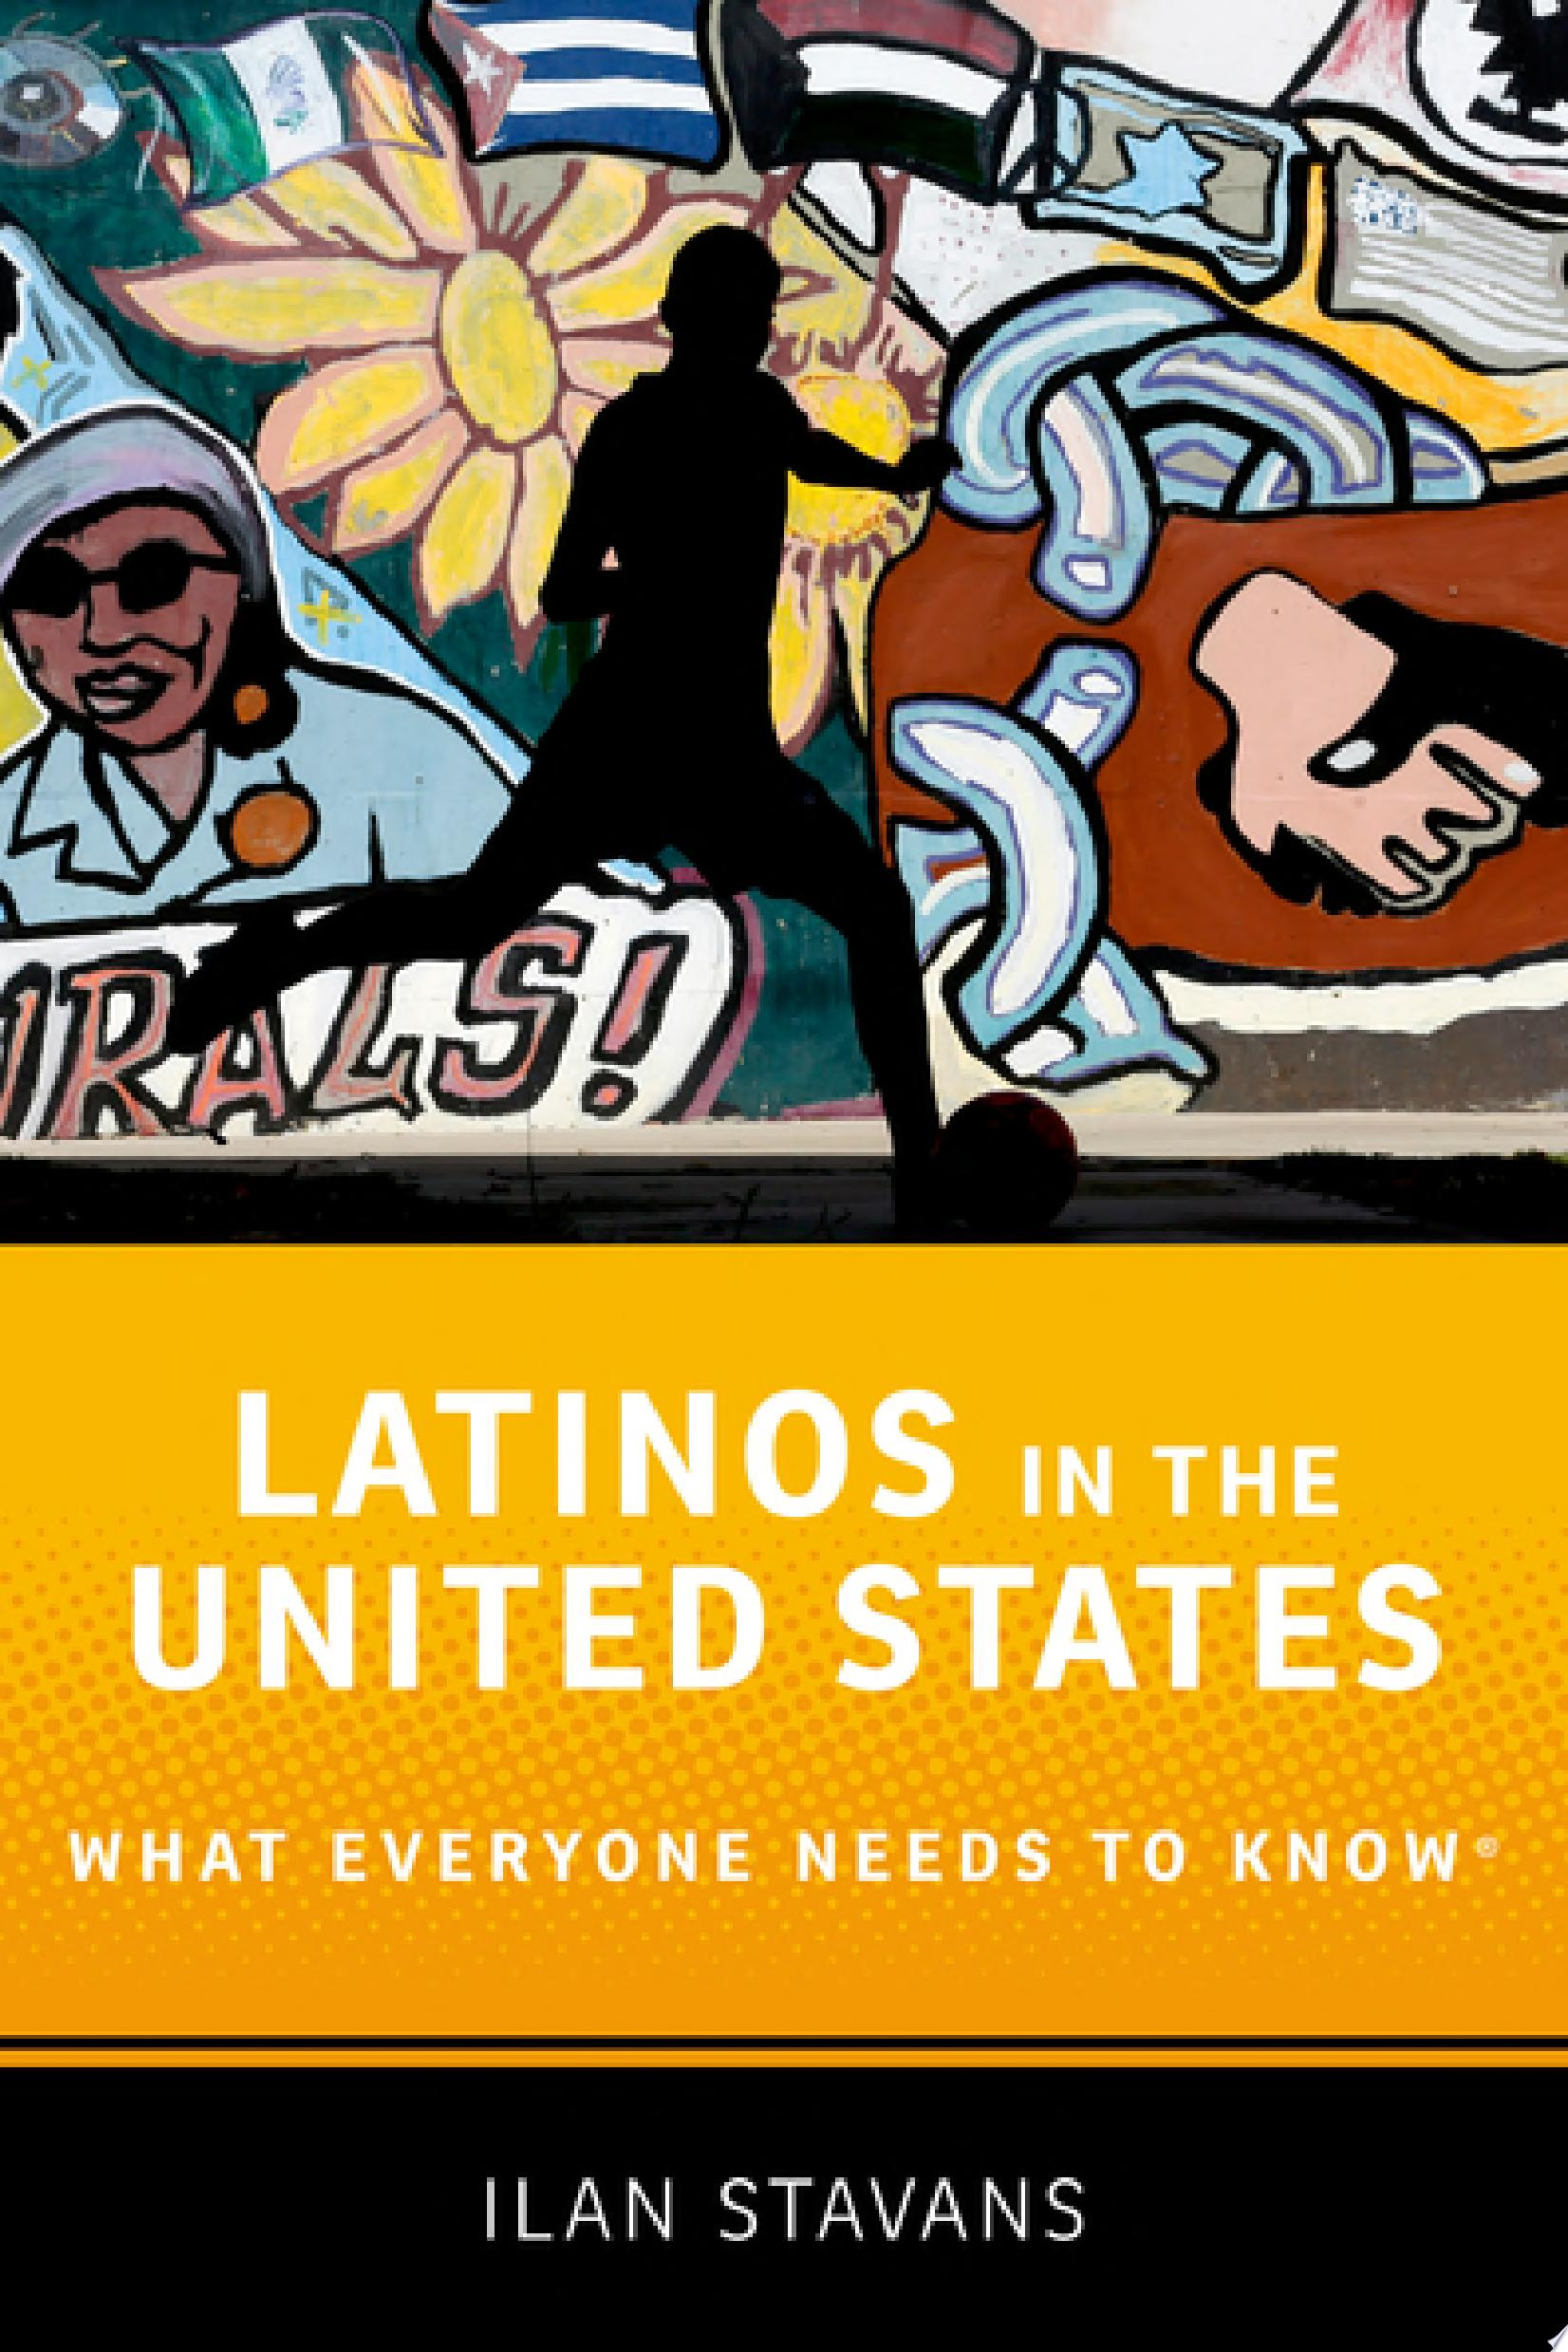 Latinos in the United States